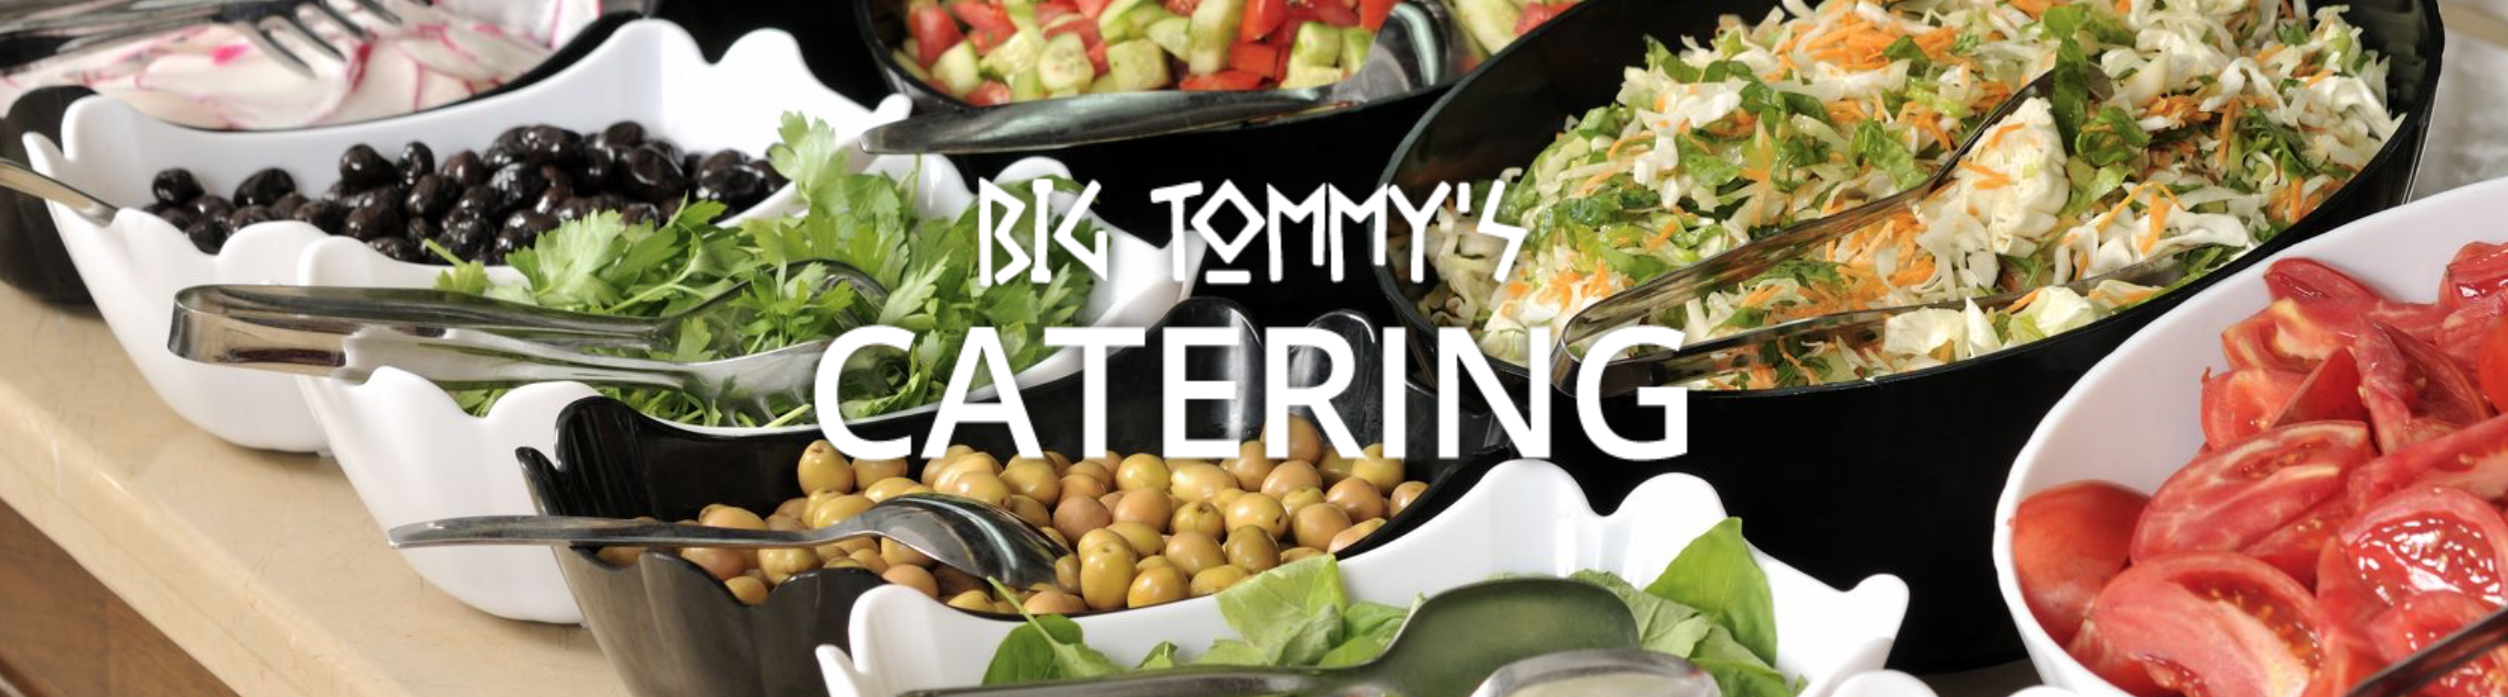 Big Tommy's Catering Menu